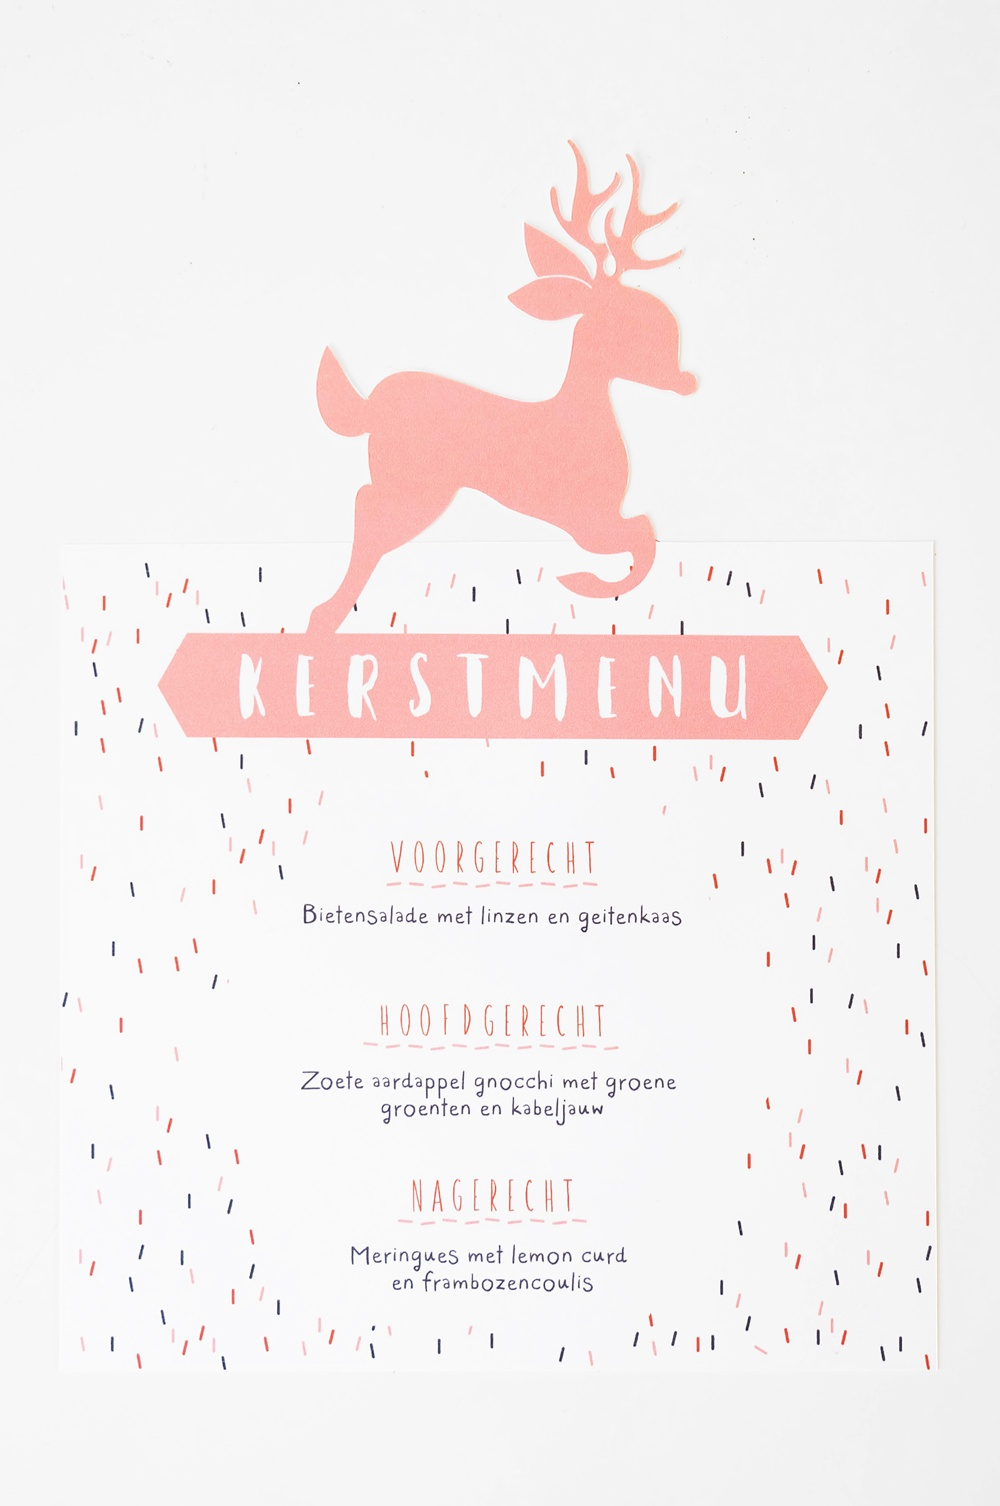 Free Printable: Kerstmenu — No Ordinary Tales - Free Printable Menu